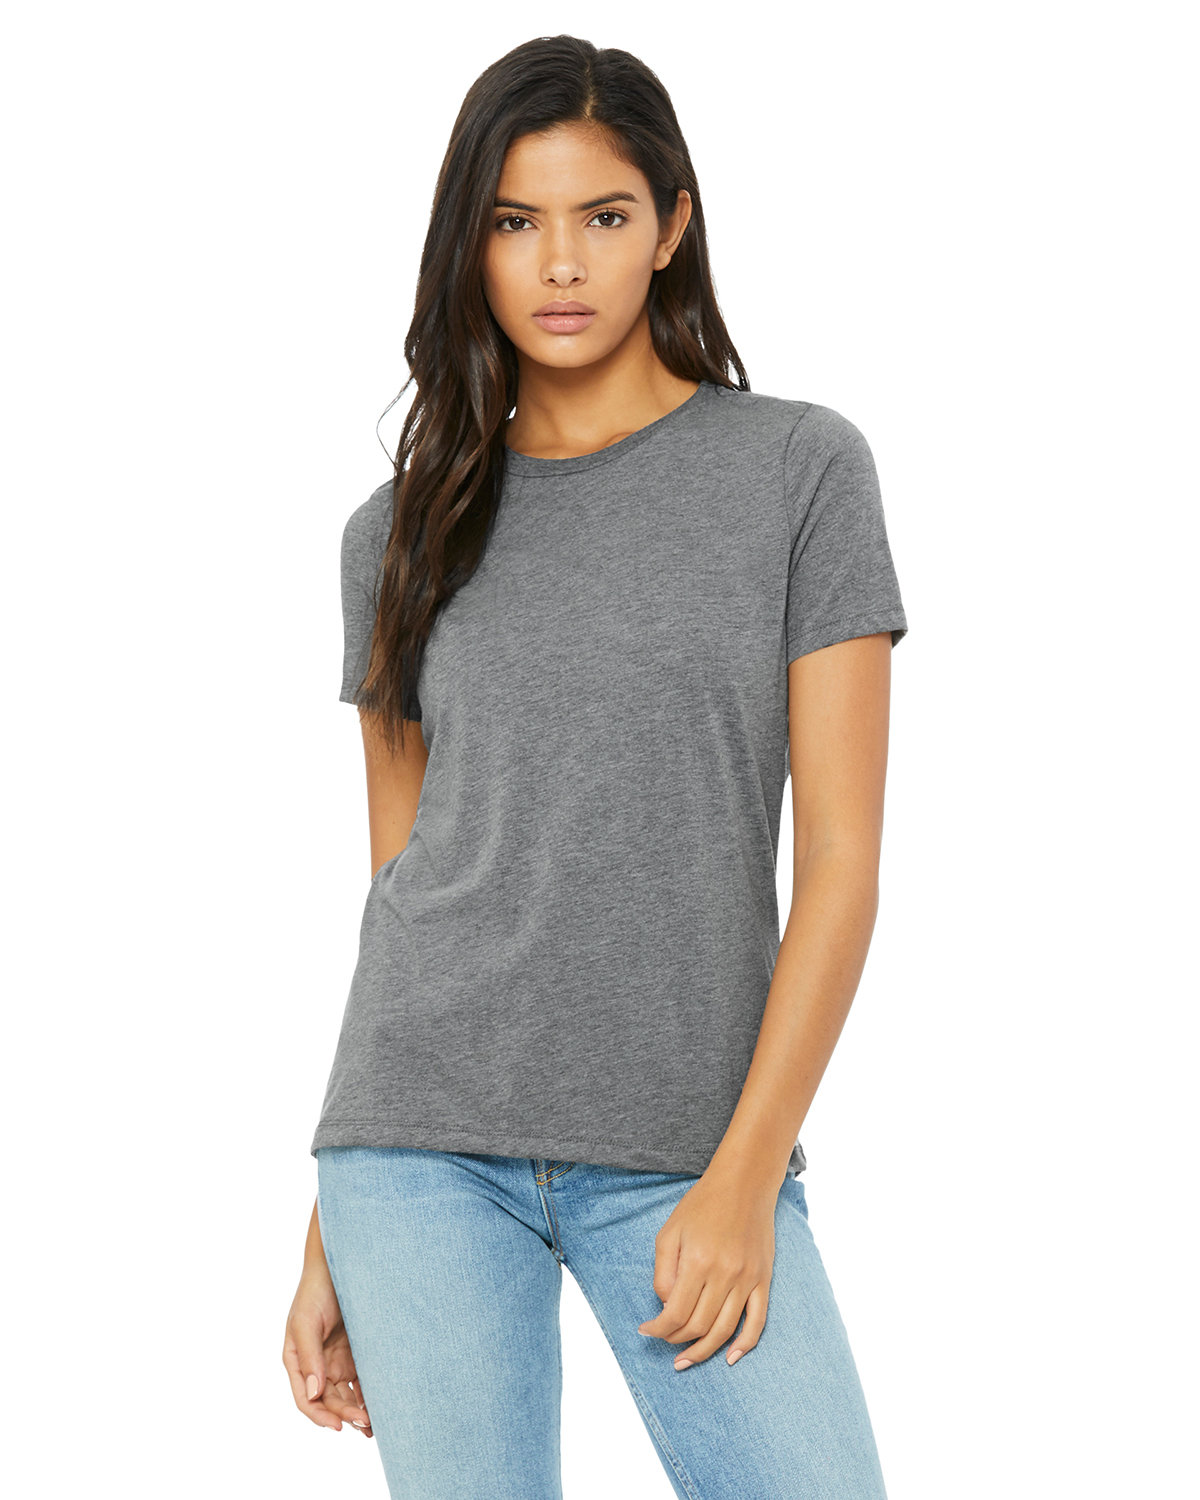 Bella + Canvas Ladies' Relaxed Triblend T-Shirt GREY TRIBLEND